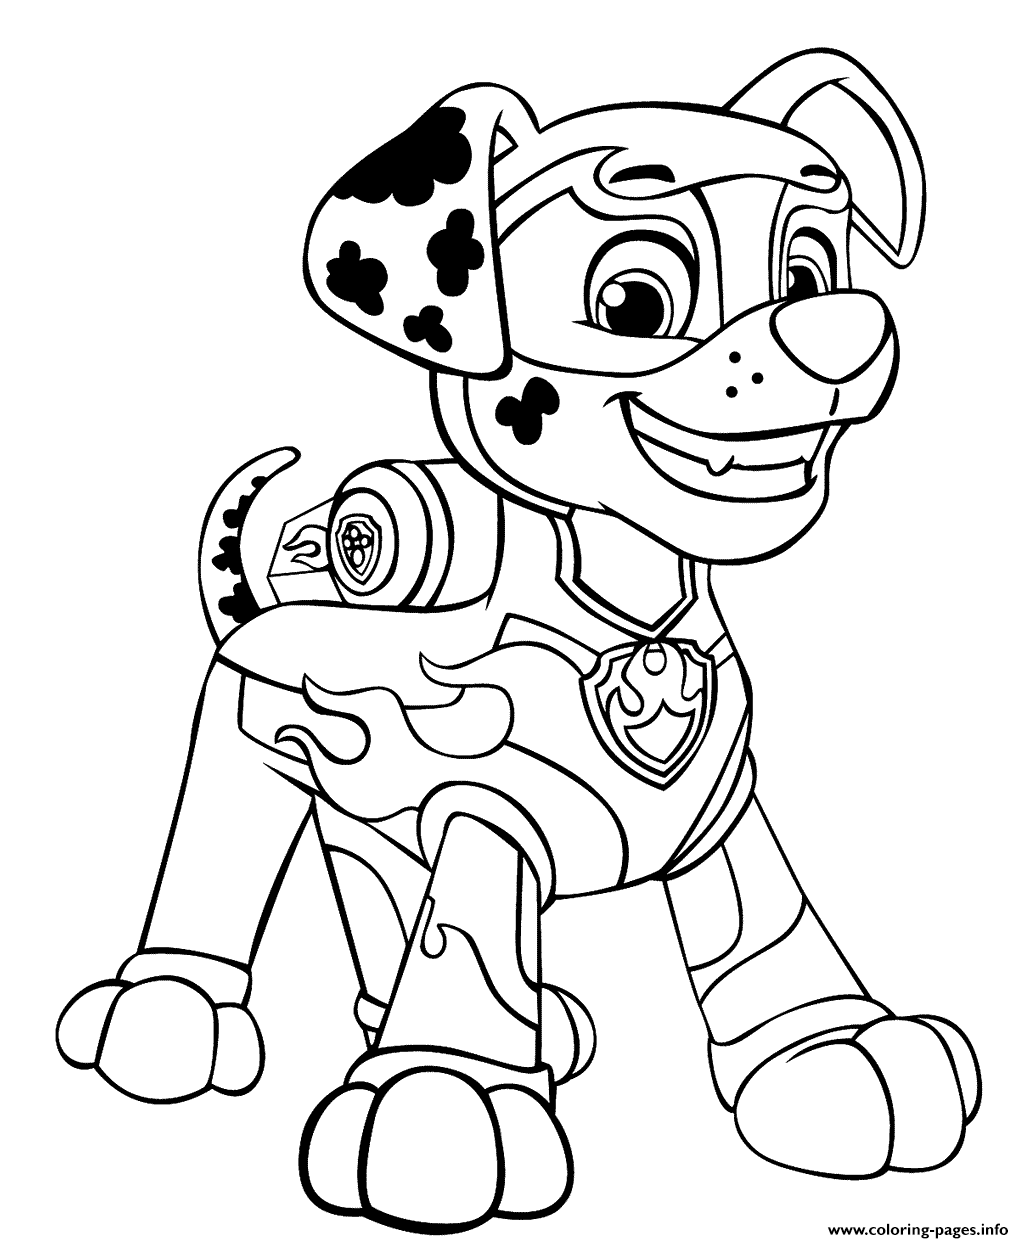 Print Paw Patrol Mighty Pups Marshal For Boys Coloring Pages Paw Patrol Coloring Pages Paw Patrol Coloring Fnaf Coloring Pages